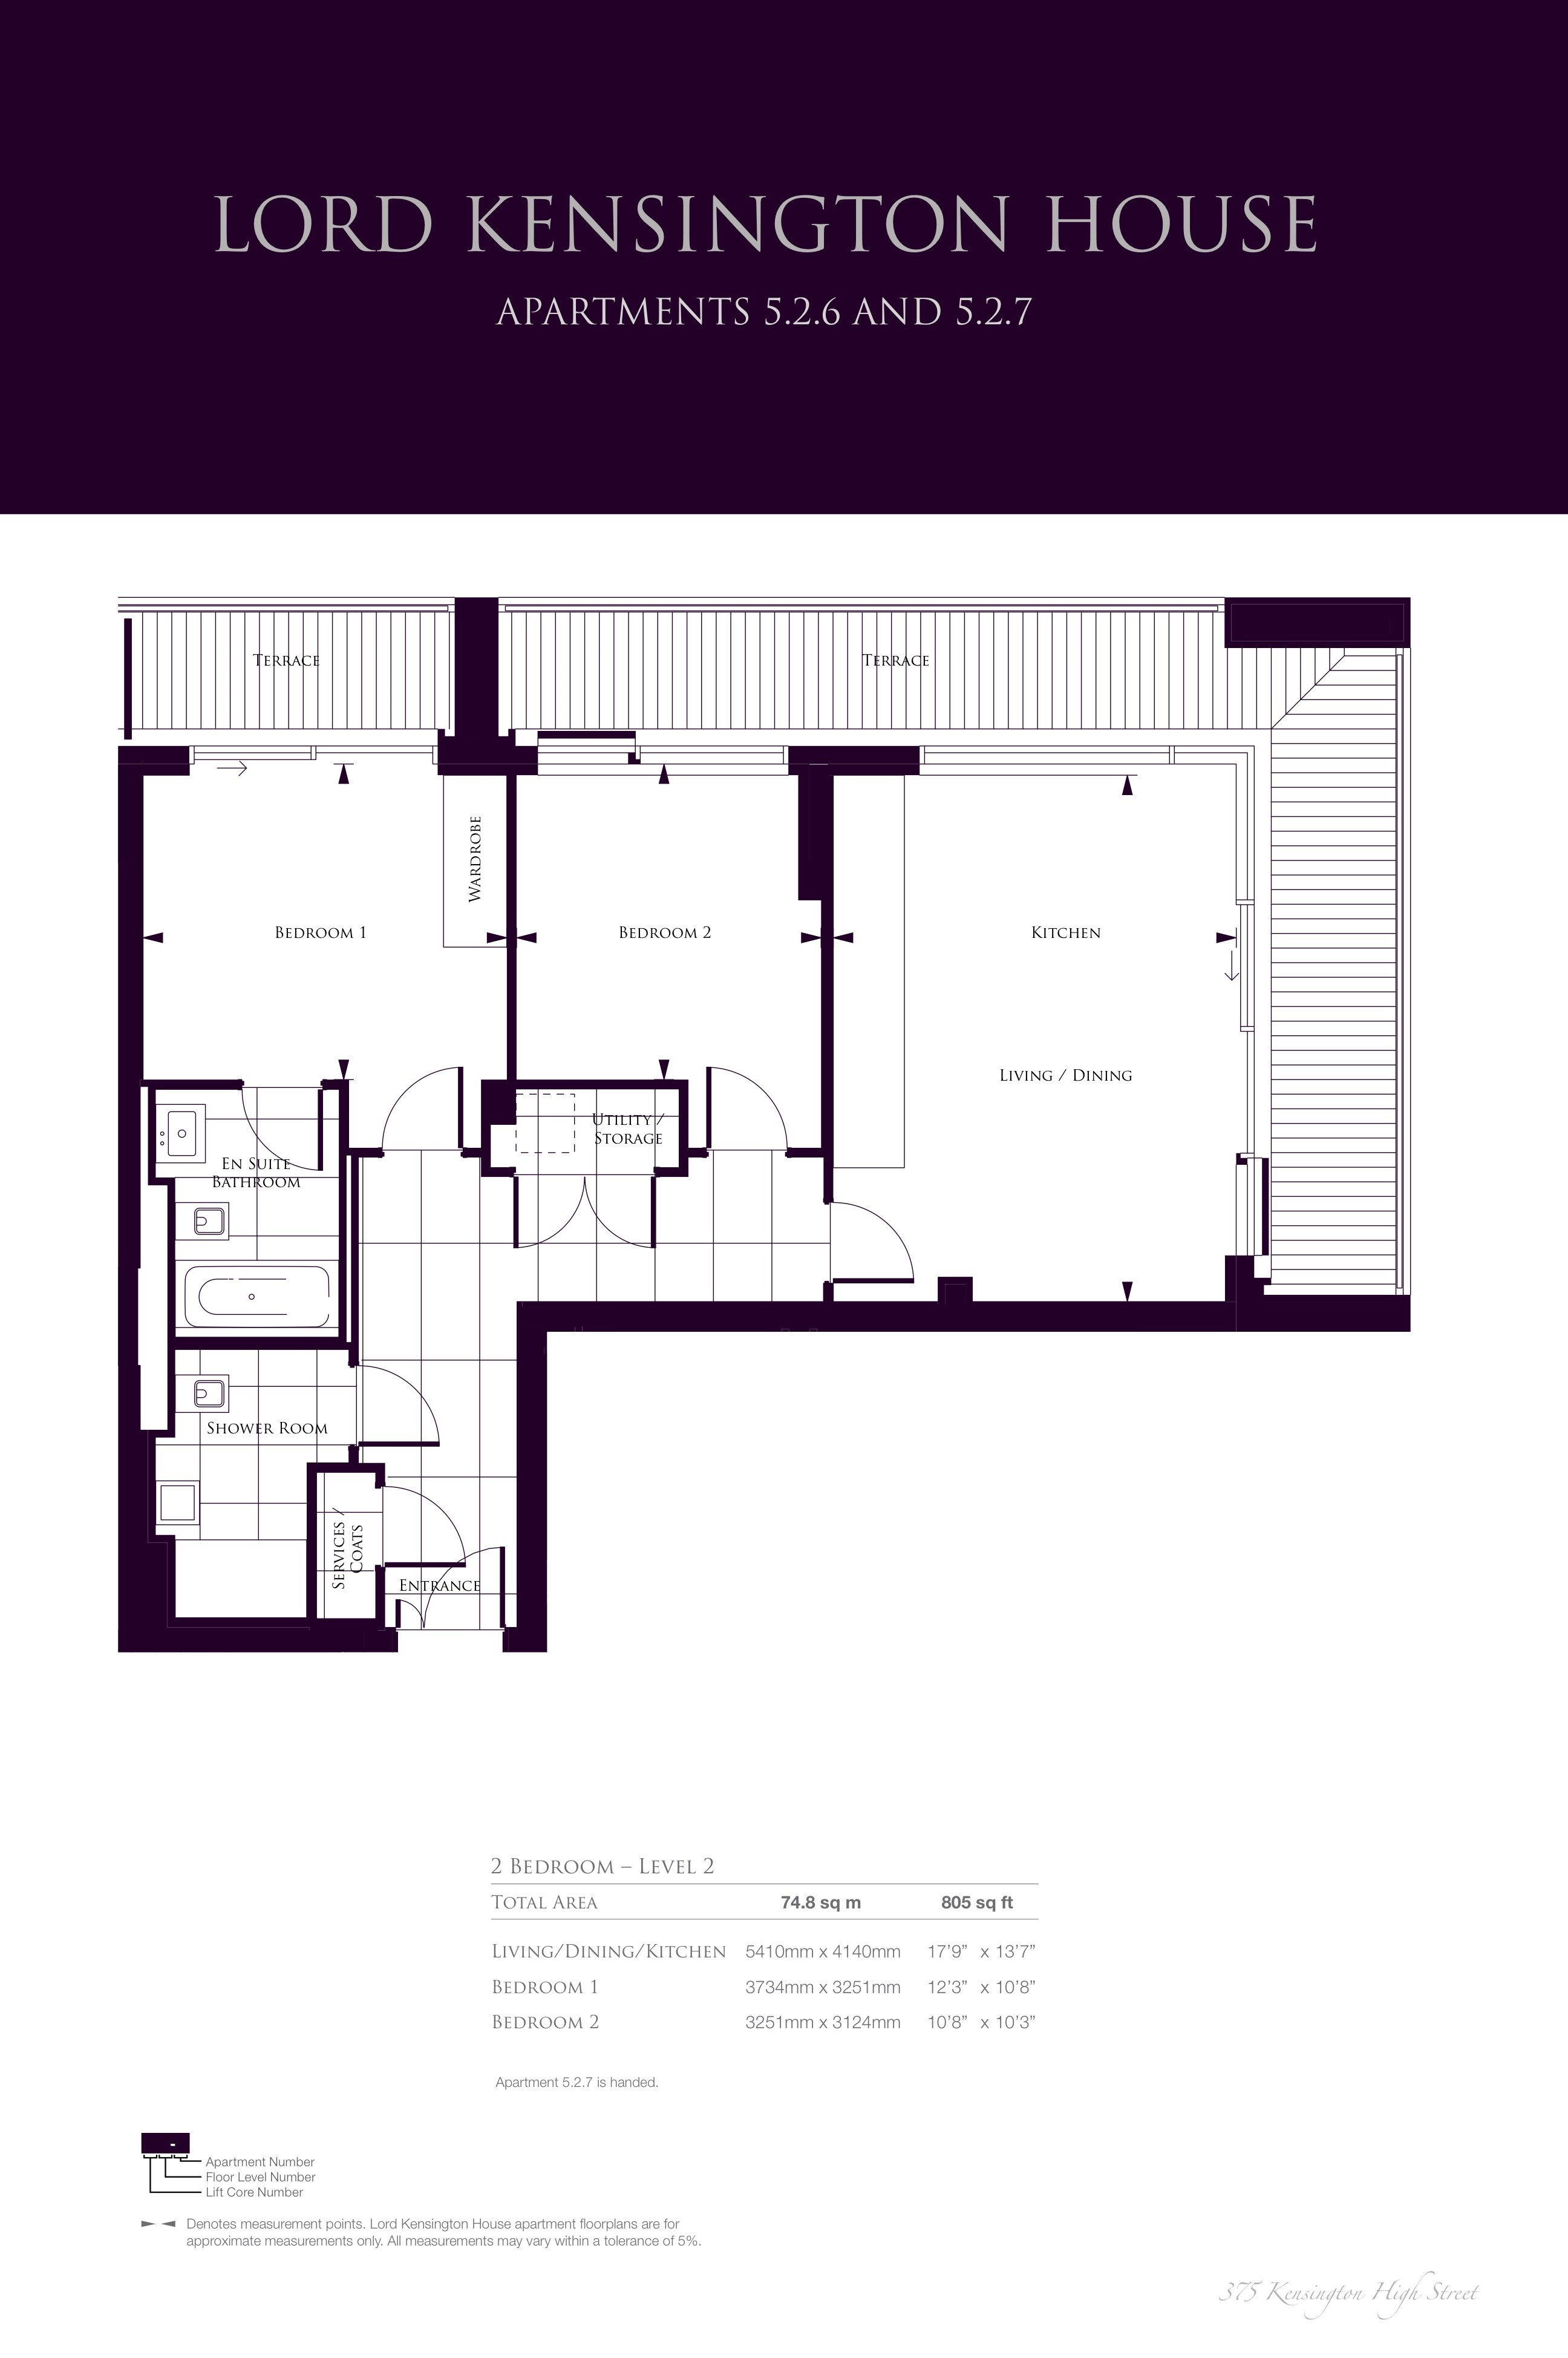 Lord Kensington House Floor Plans   Chelsea, London.